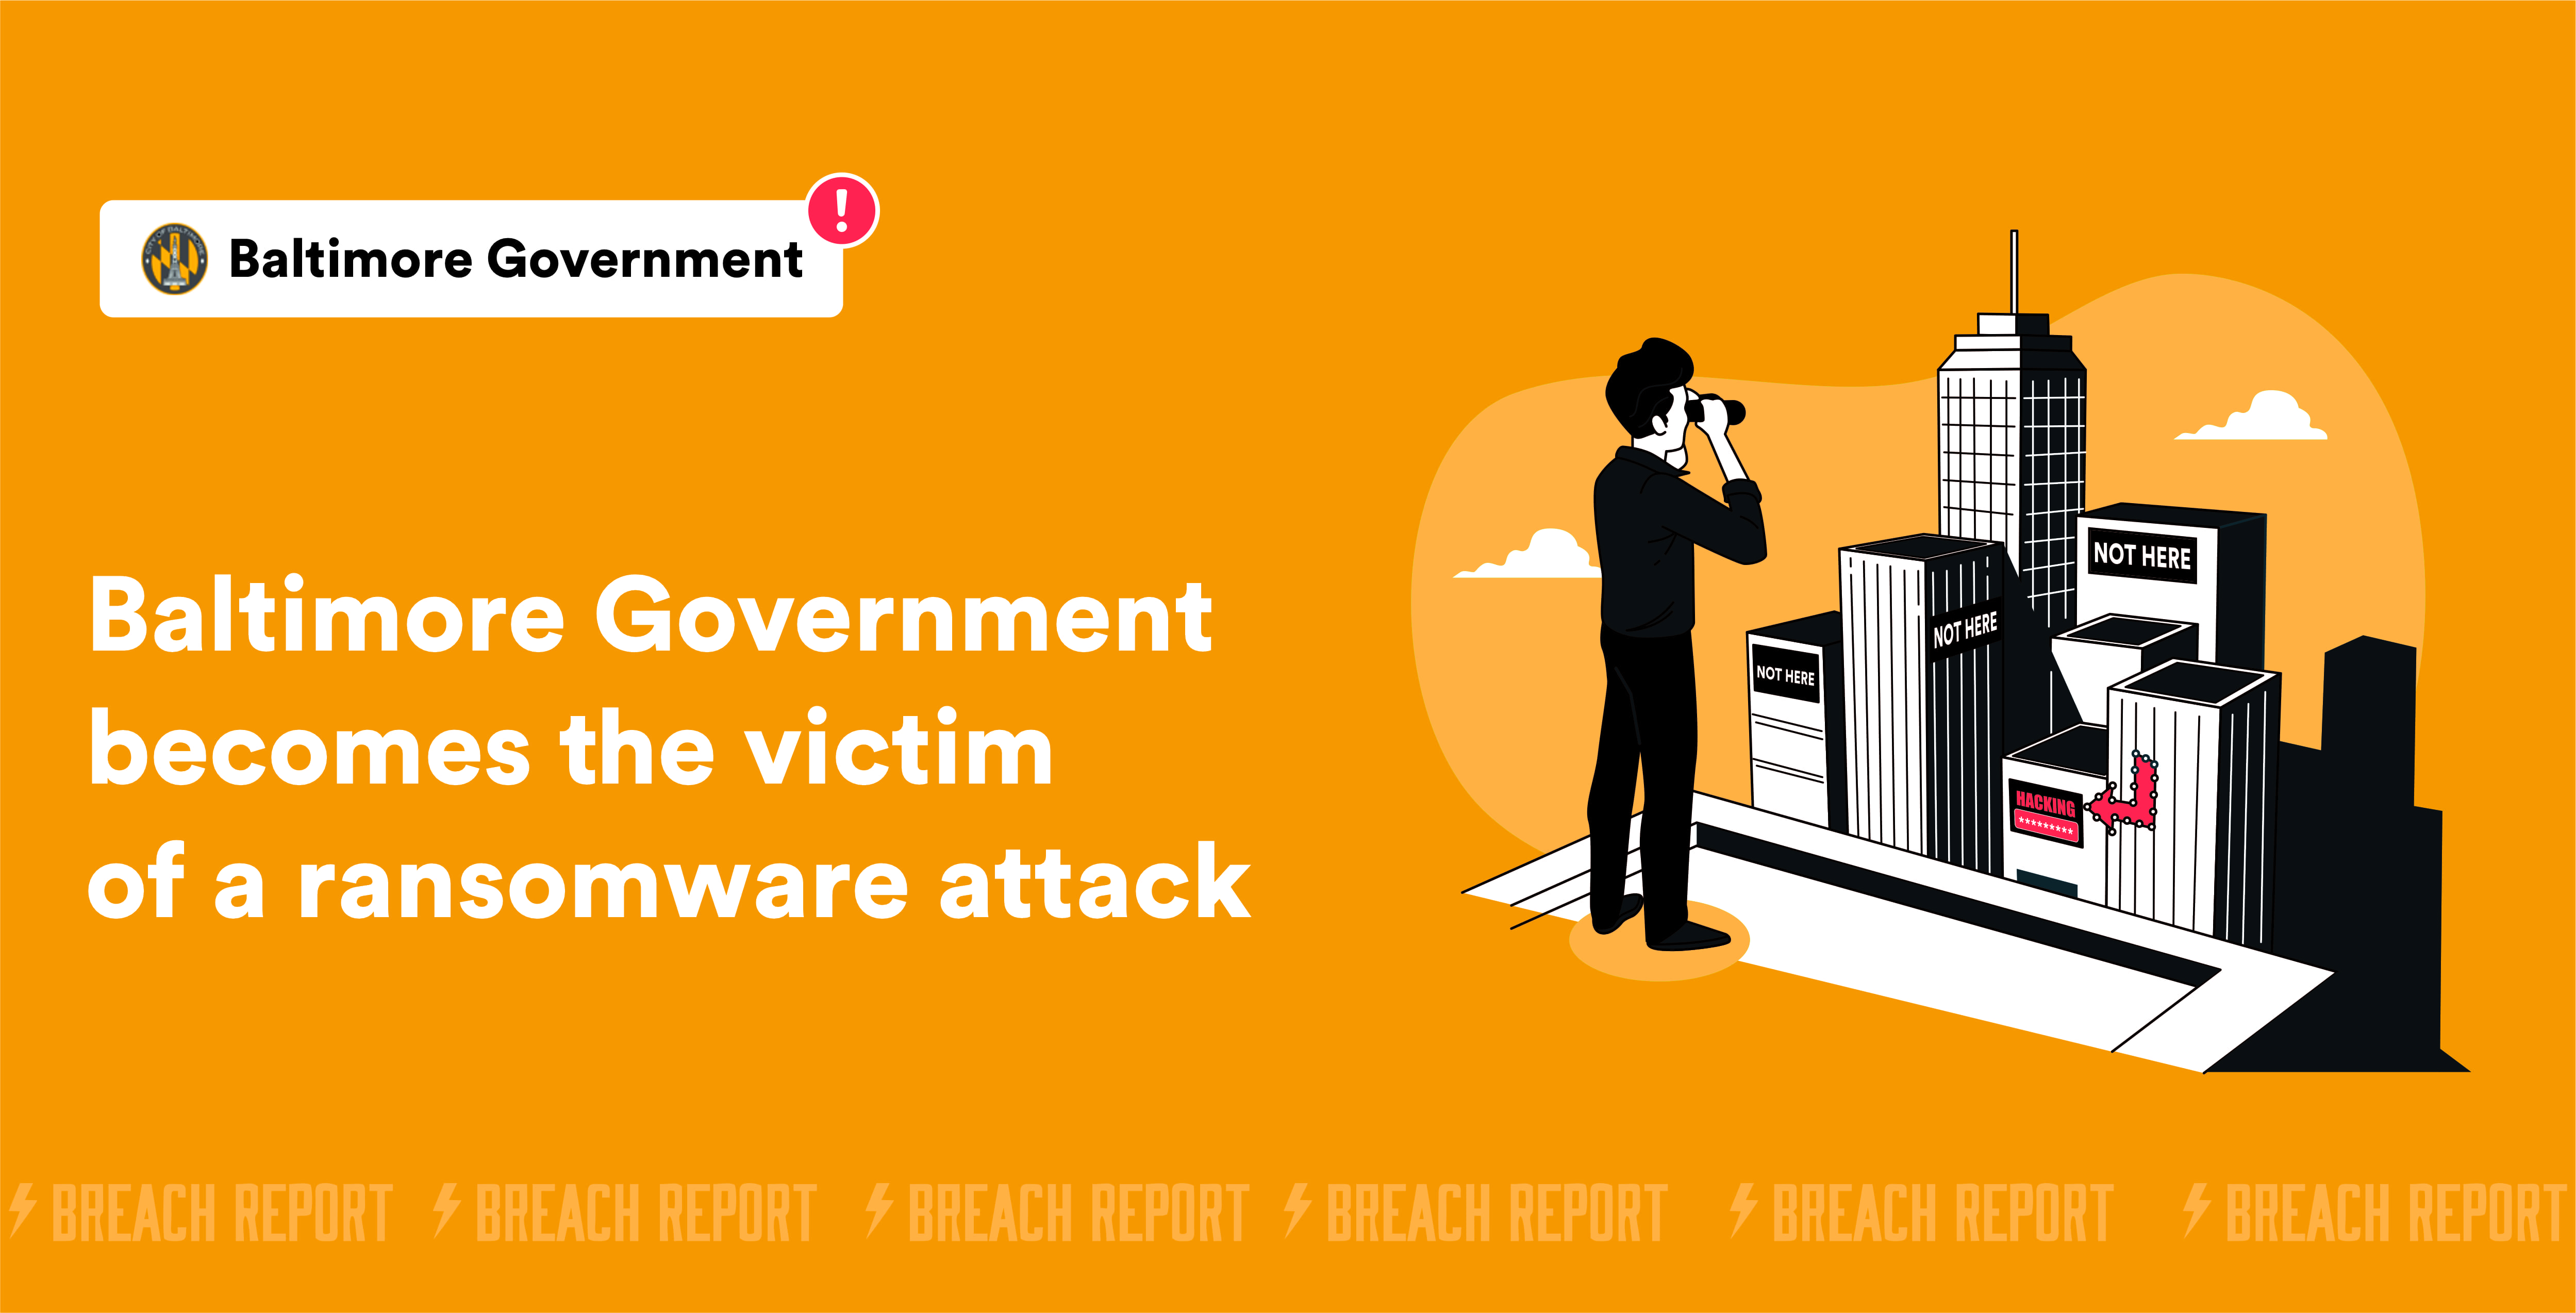 us government breach data breach breach report email compromised cyber security news hackers us breach